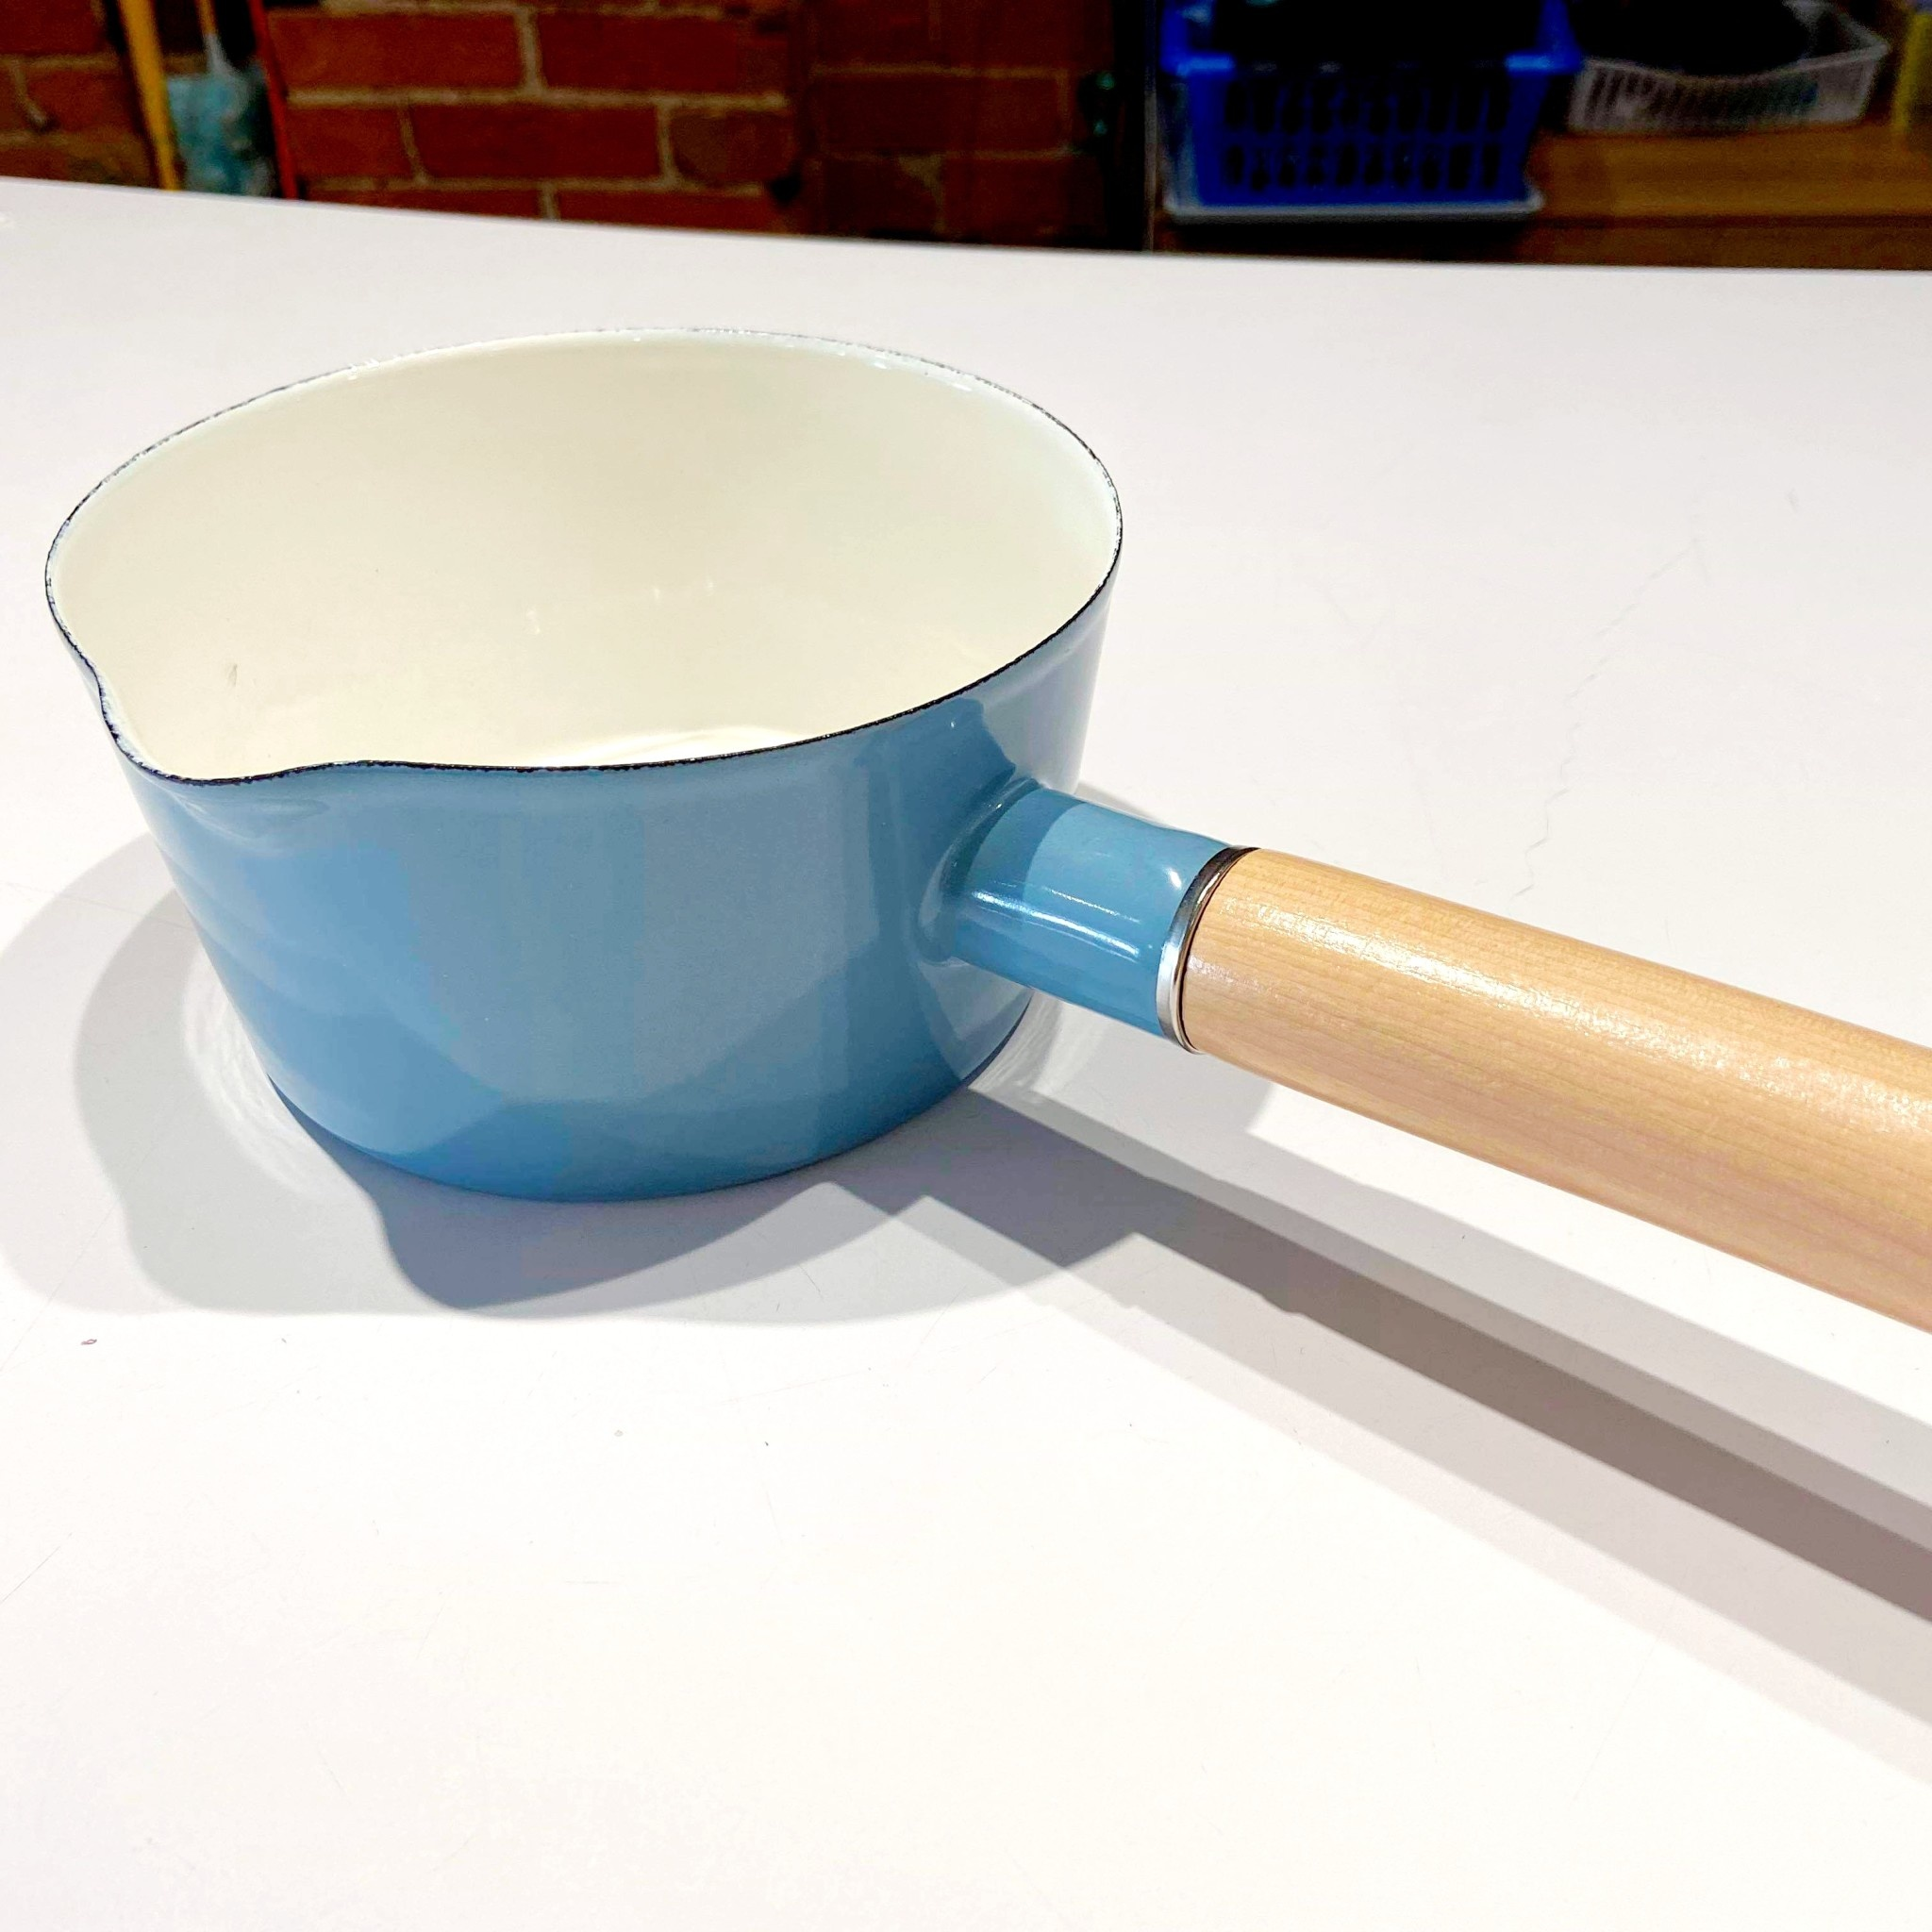 15cm Blue Pot with Wood Handle